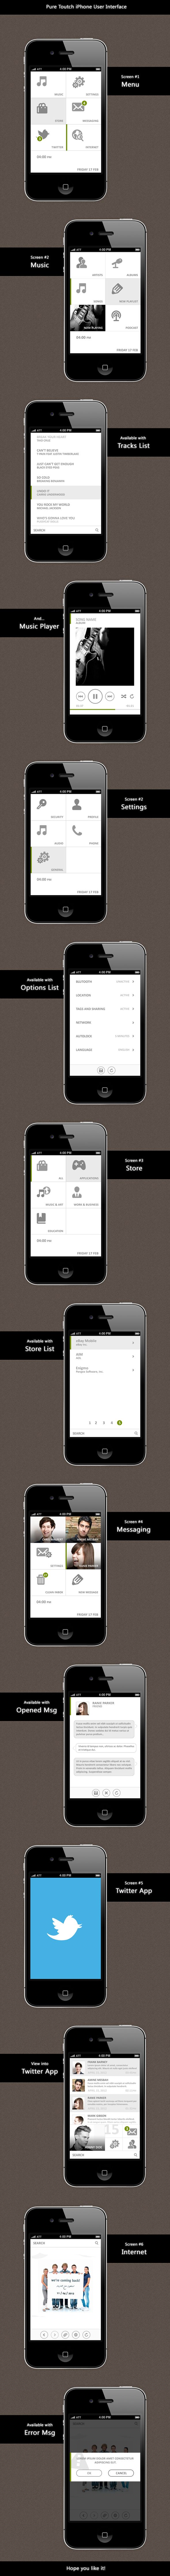 Pure Toutch iPhone User Interface - Mobile Interface - Creattica